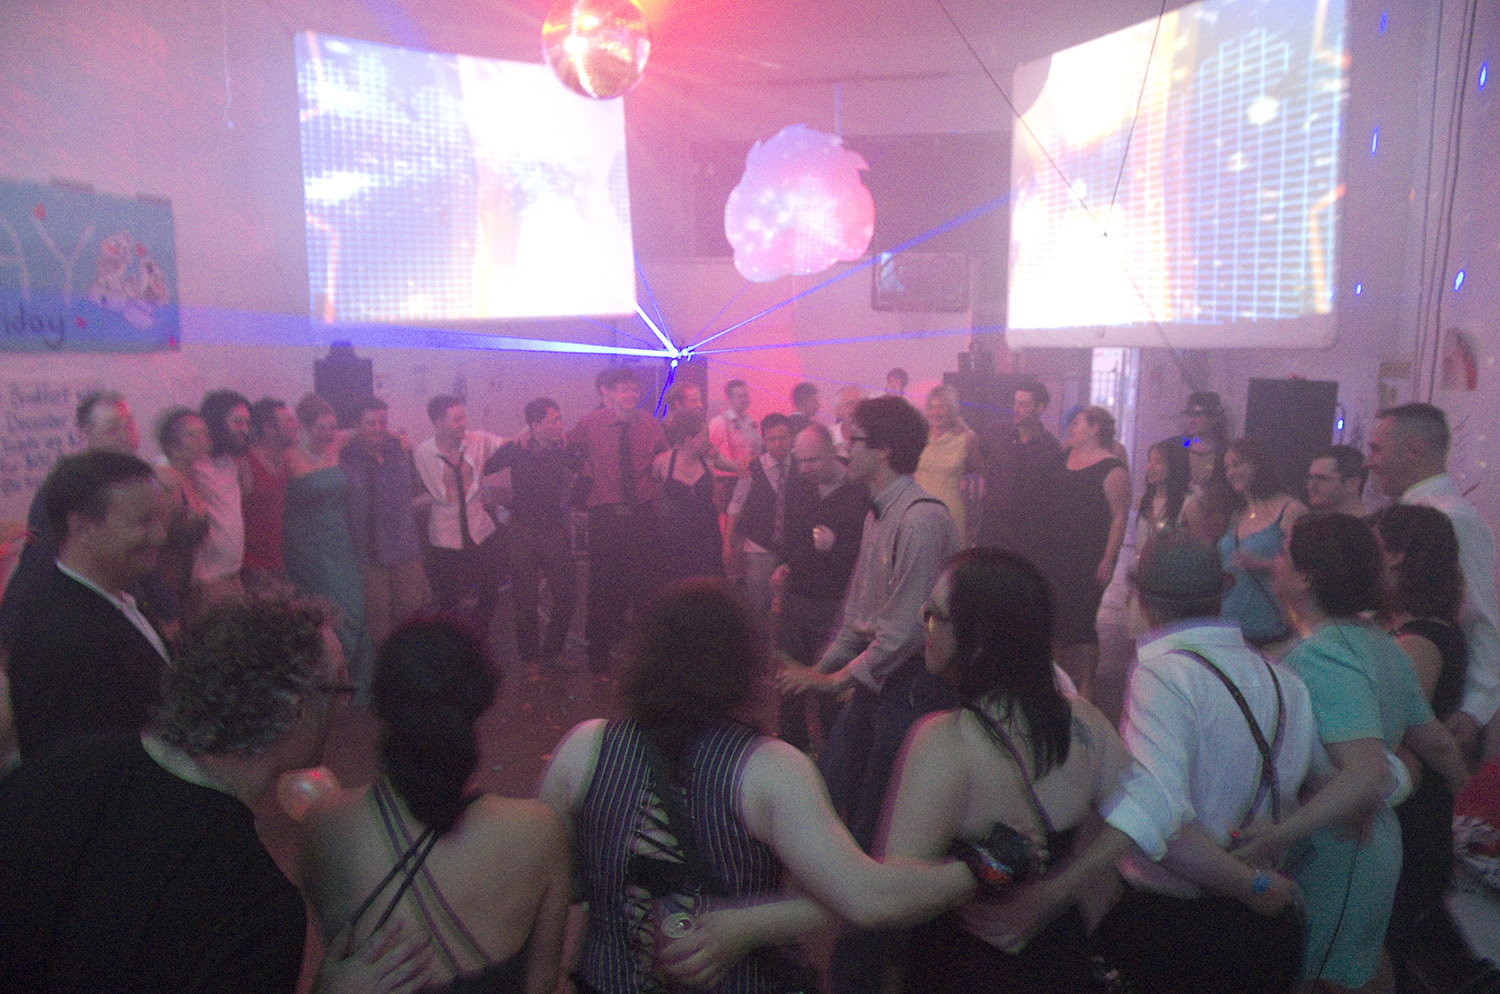 Prom Night at Soundproof High, one of three parties held at East Van Studios between 2013 and 2014, garnered possibly the most costume participation of any Soundproof party yet. It ended with everyone spontaneously embracing to form a large circle surrounding the dancers within.